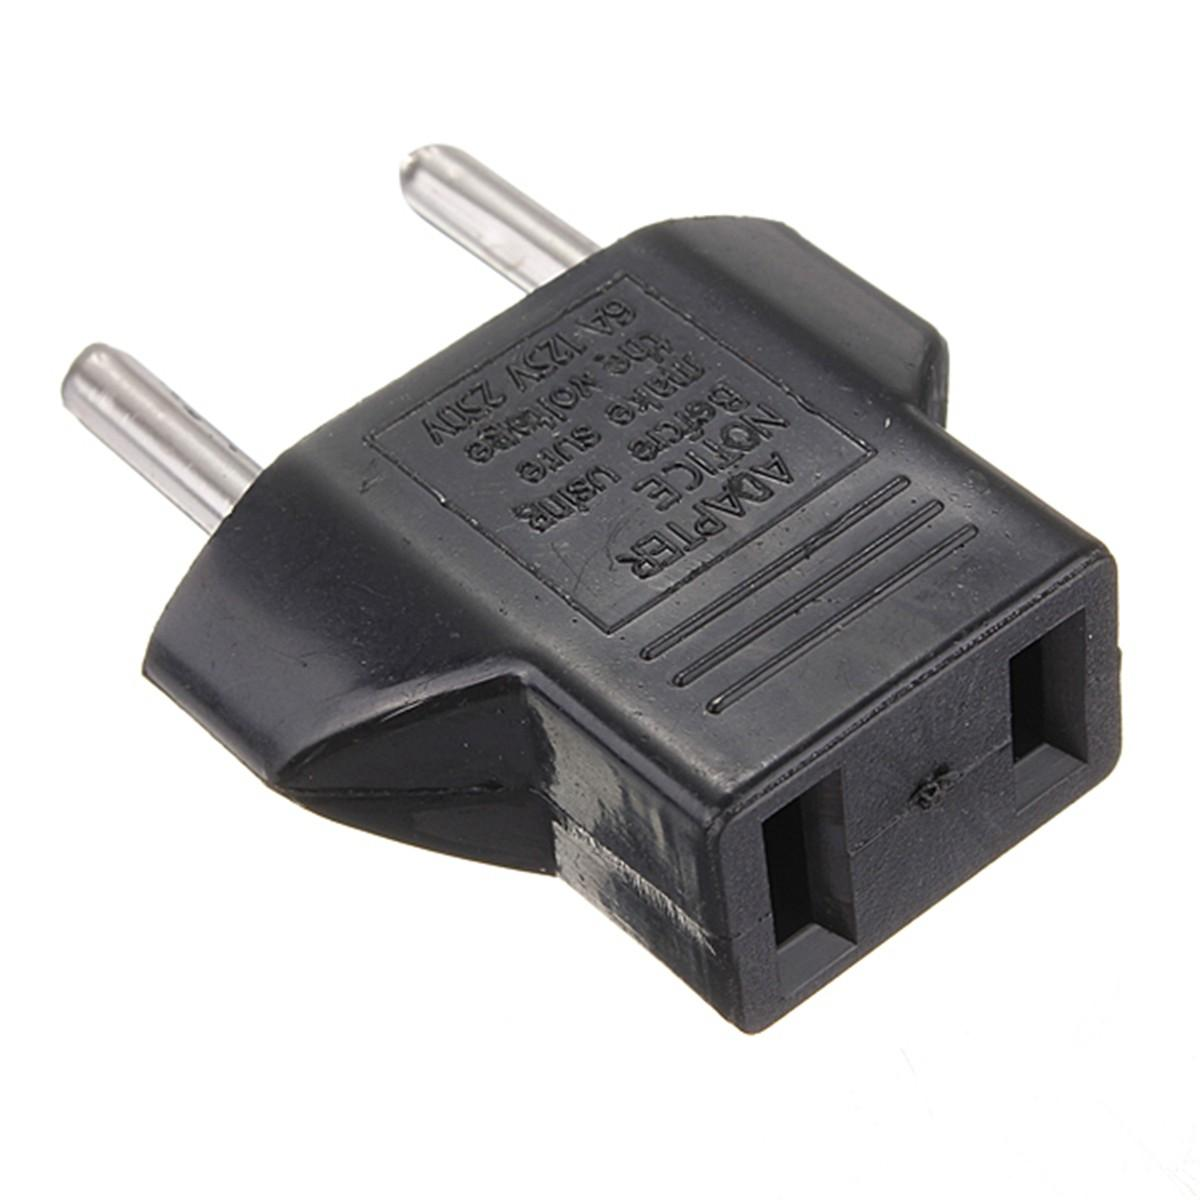 Claite US per EU Travel AC Power presa di corrente Plug Adapter Converter 2 Pin AC 125V / 250V